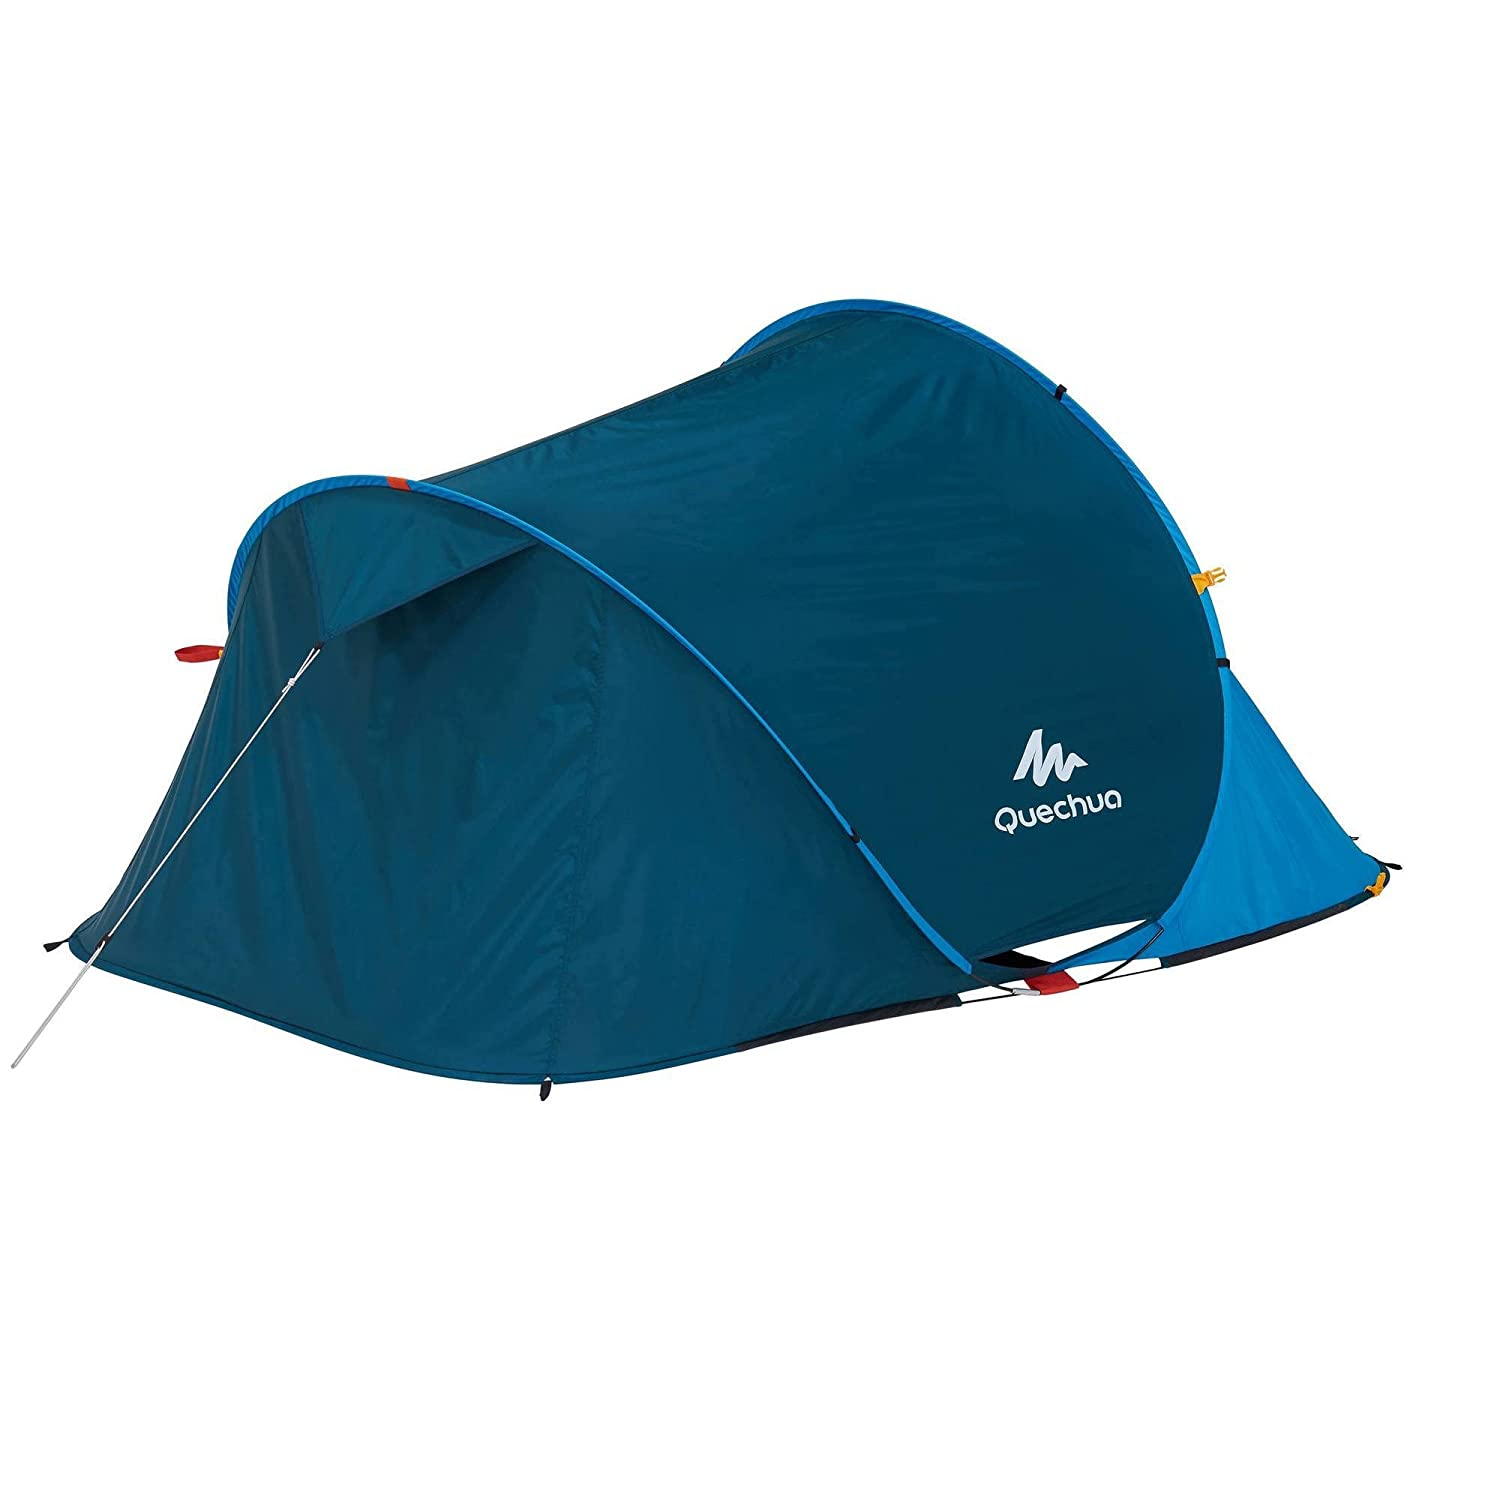 Amazon.com  Quechua 2 Seconds Waterproof Pop Up Easy to Assembly Tent for 2 Man (Blue)  Sports u0026 Outdoors  sc 1 st  Amazon.com : quecha tent - memphite.com